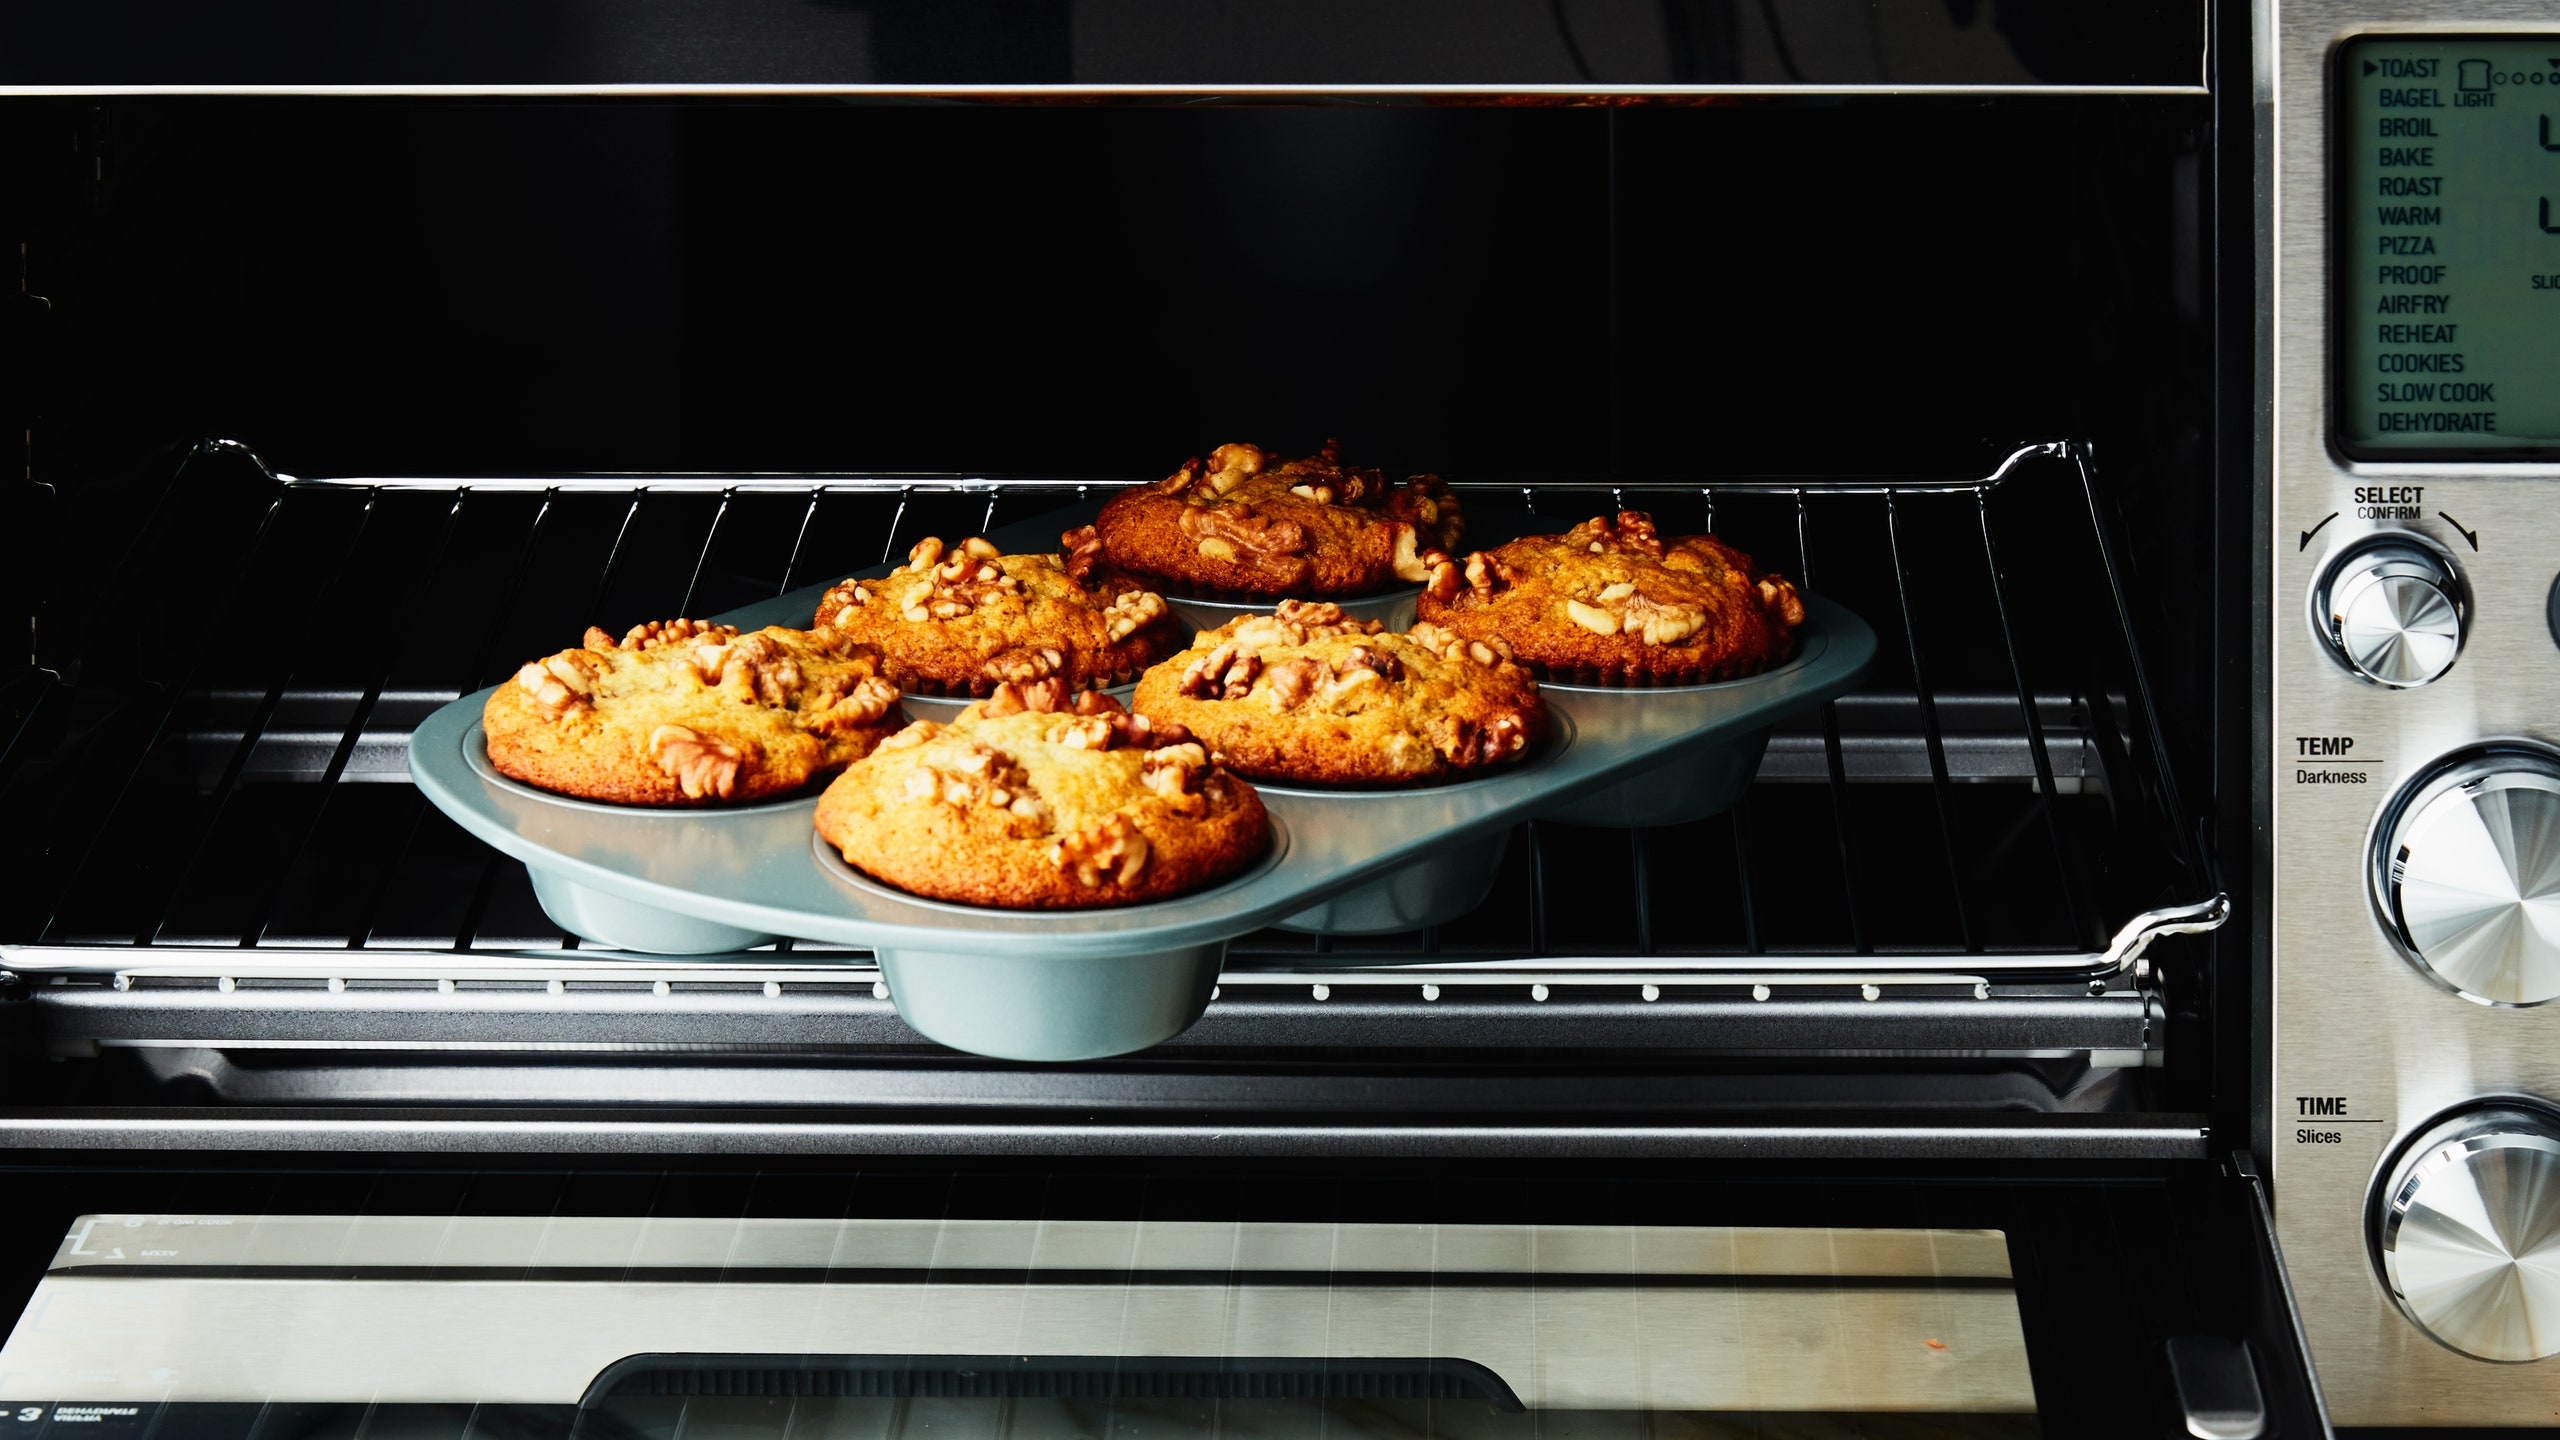 Bake Cakes, Muffins in toaster oven